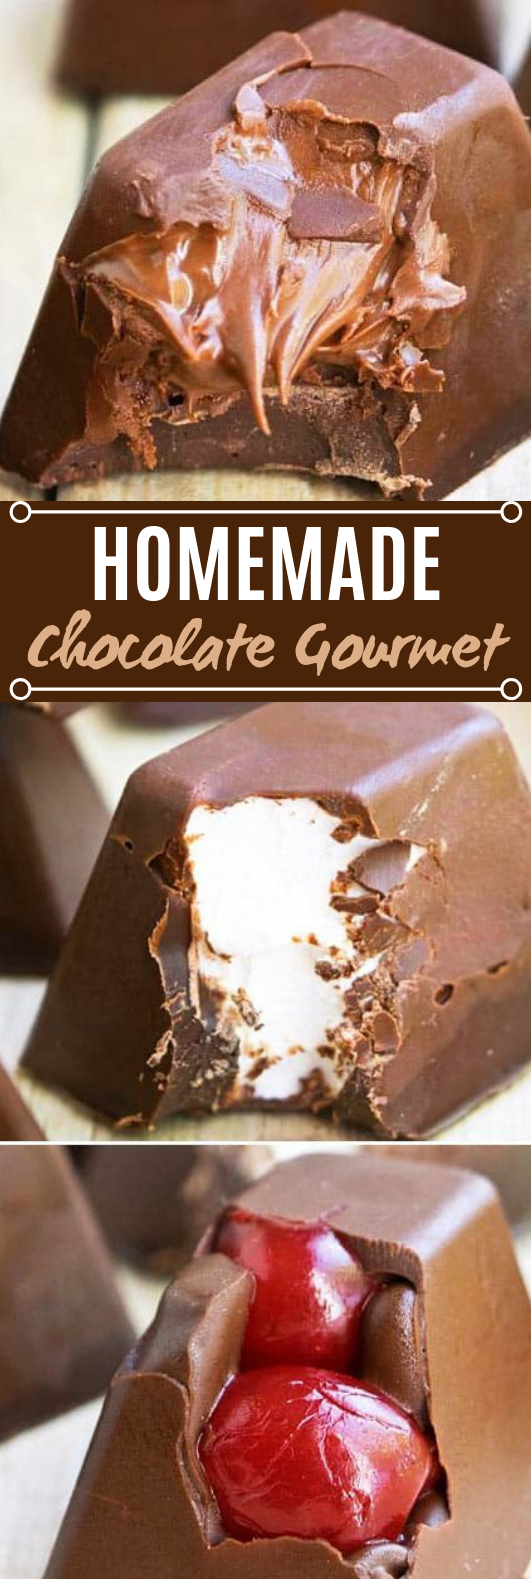 HOMEMADE GOURMET CHOCOLATE #easy #desserts